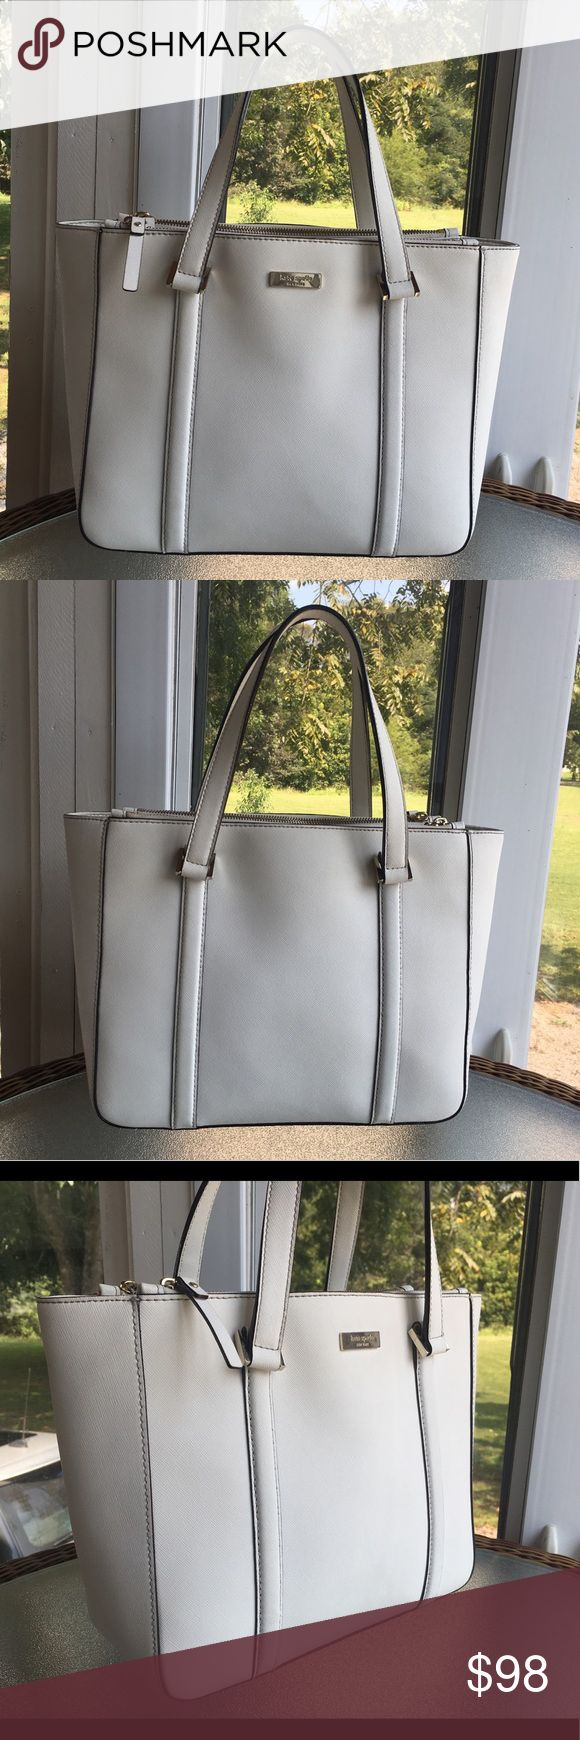 """♠️Kate Spade♠️Newbury Lane Cadene ♠️Kate Spade♠️Newbury Lane Cadene (Natural Ivory Color )  Good condition.Saffiano leather.Open center with magnetic closure with zippers compartment on either side of the center.Interior and exterior is clean.Dual handles are good condition.No damage,No rips,and No tears.Has some scratches on gold plate hardware.Came from a smoke free and pet free home.I'm willing to negotiate through the offer button.  Size: 12"""" W x 10"""" H x 4.5"""" D Handles drop: 7"""" kate…"""